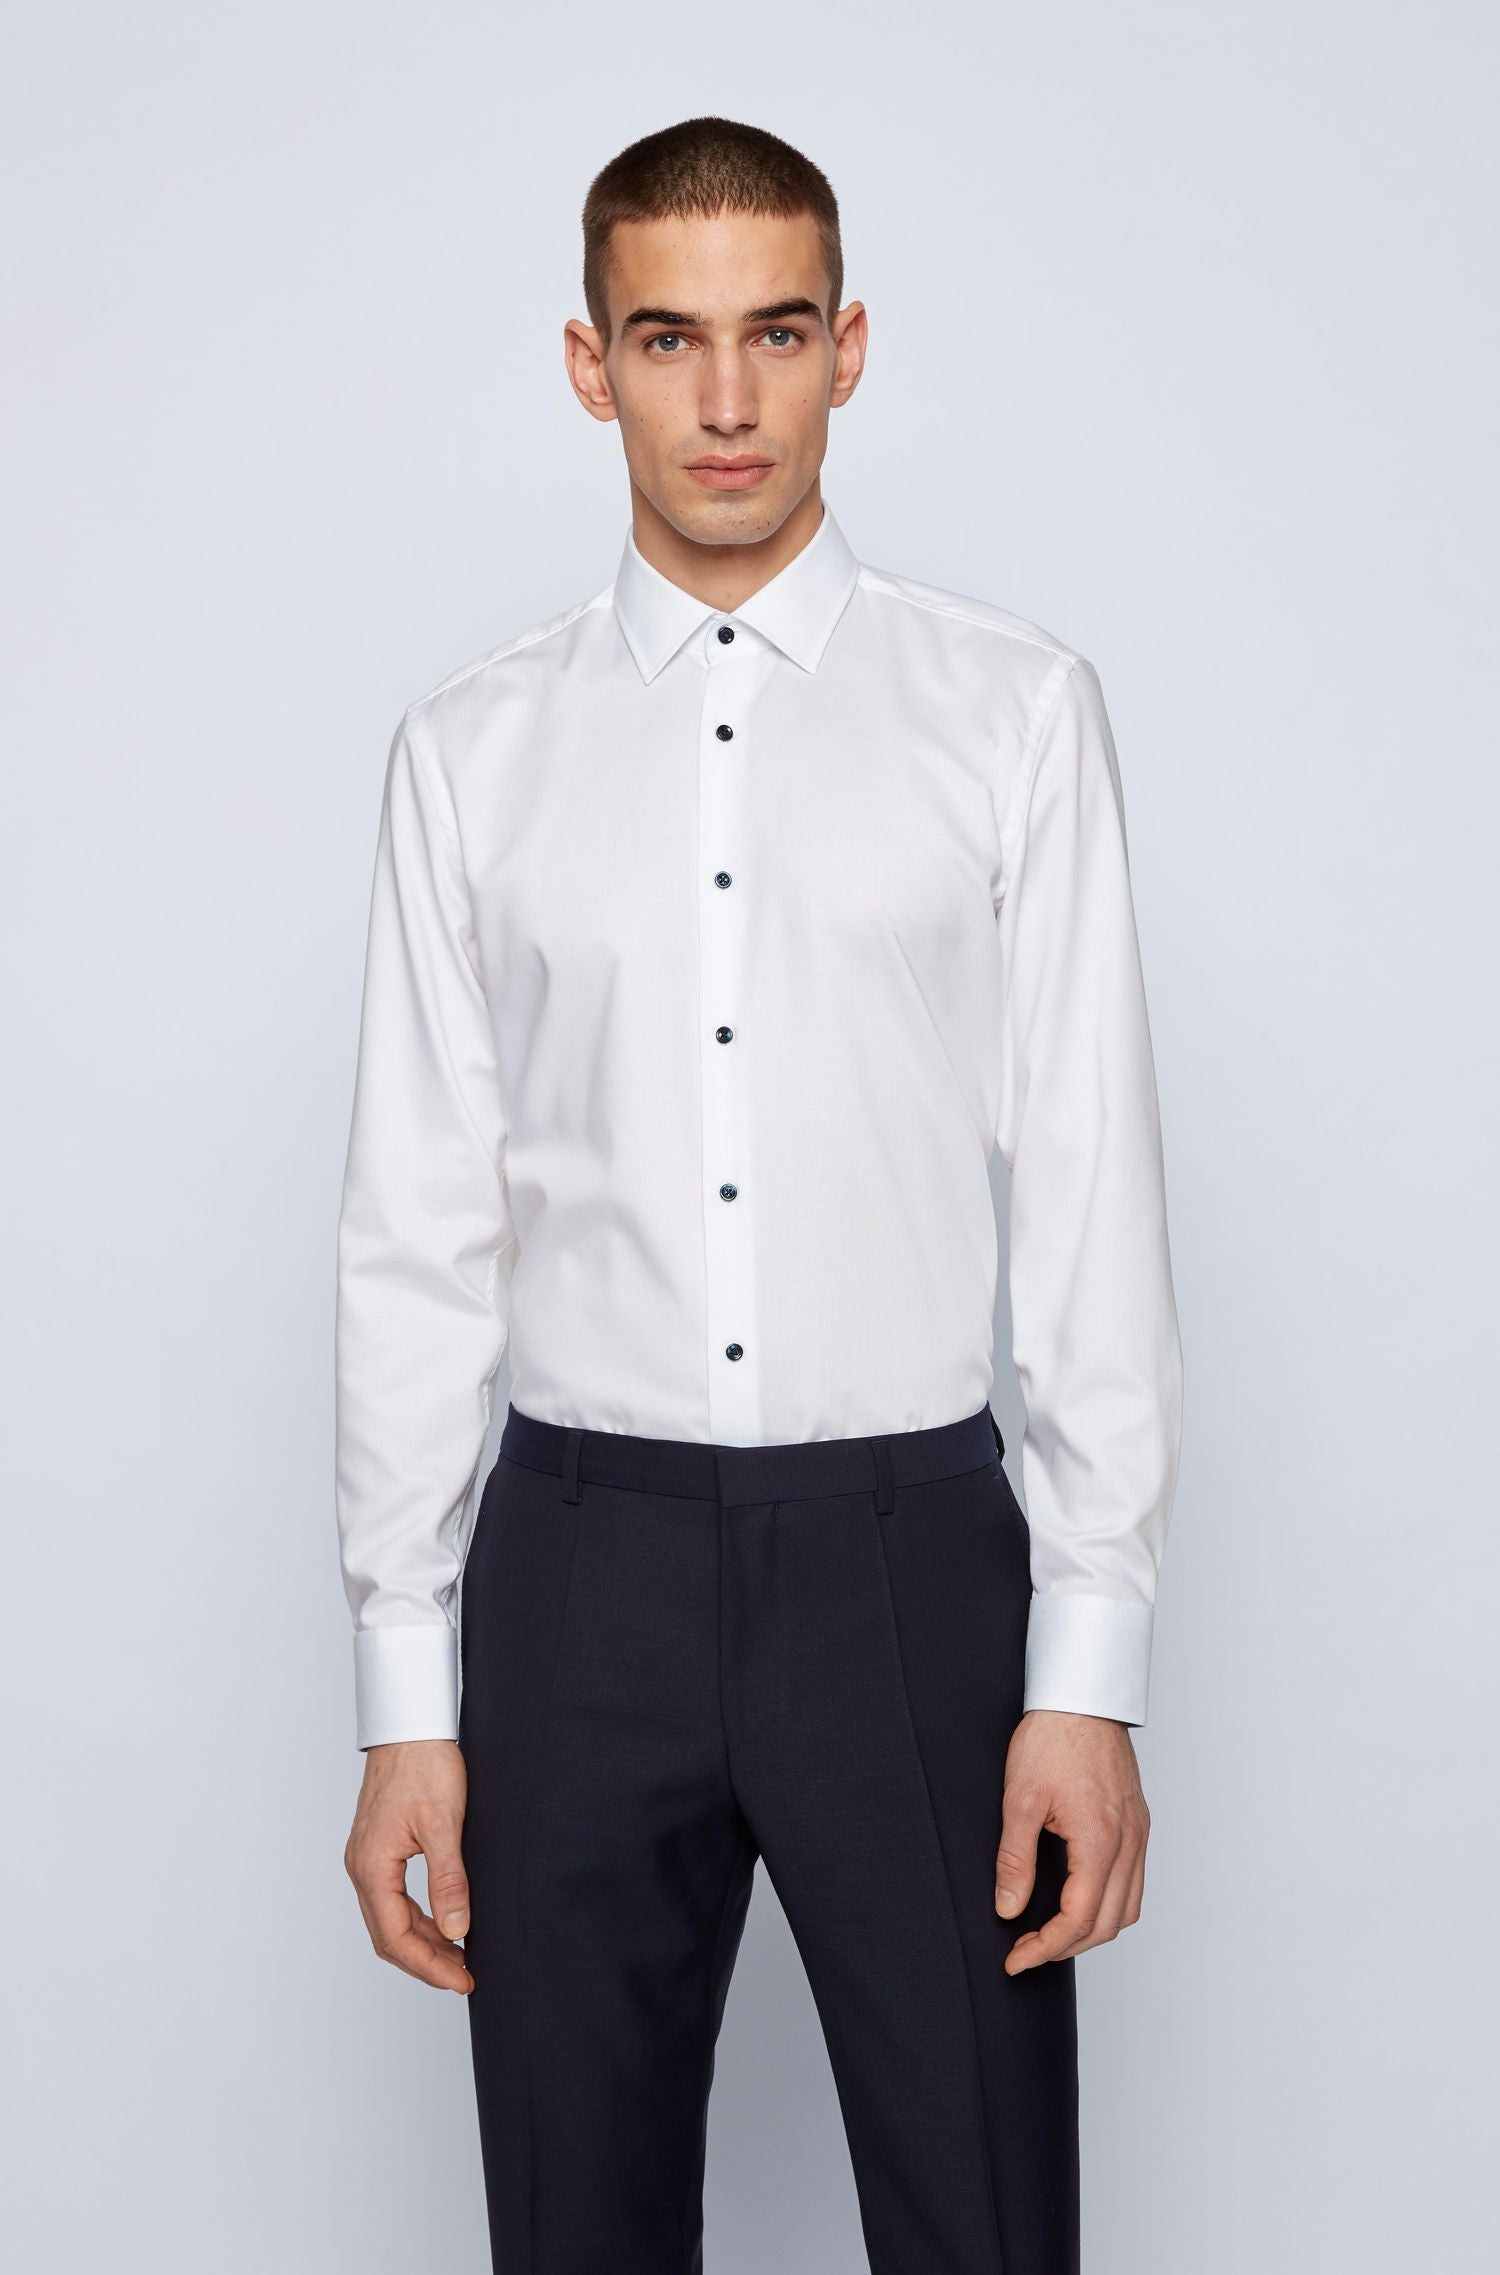 Hugo Boss - JORAX White Slim Fit Shirt with Contrast Buttons and Trim 50450153